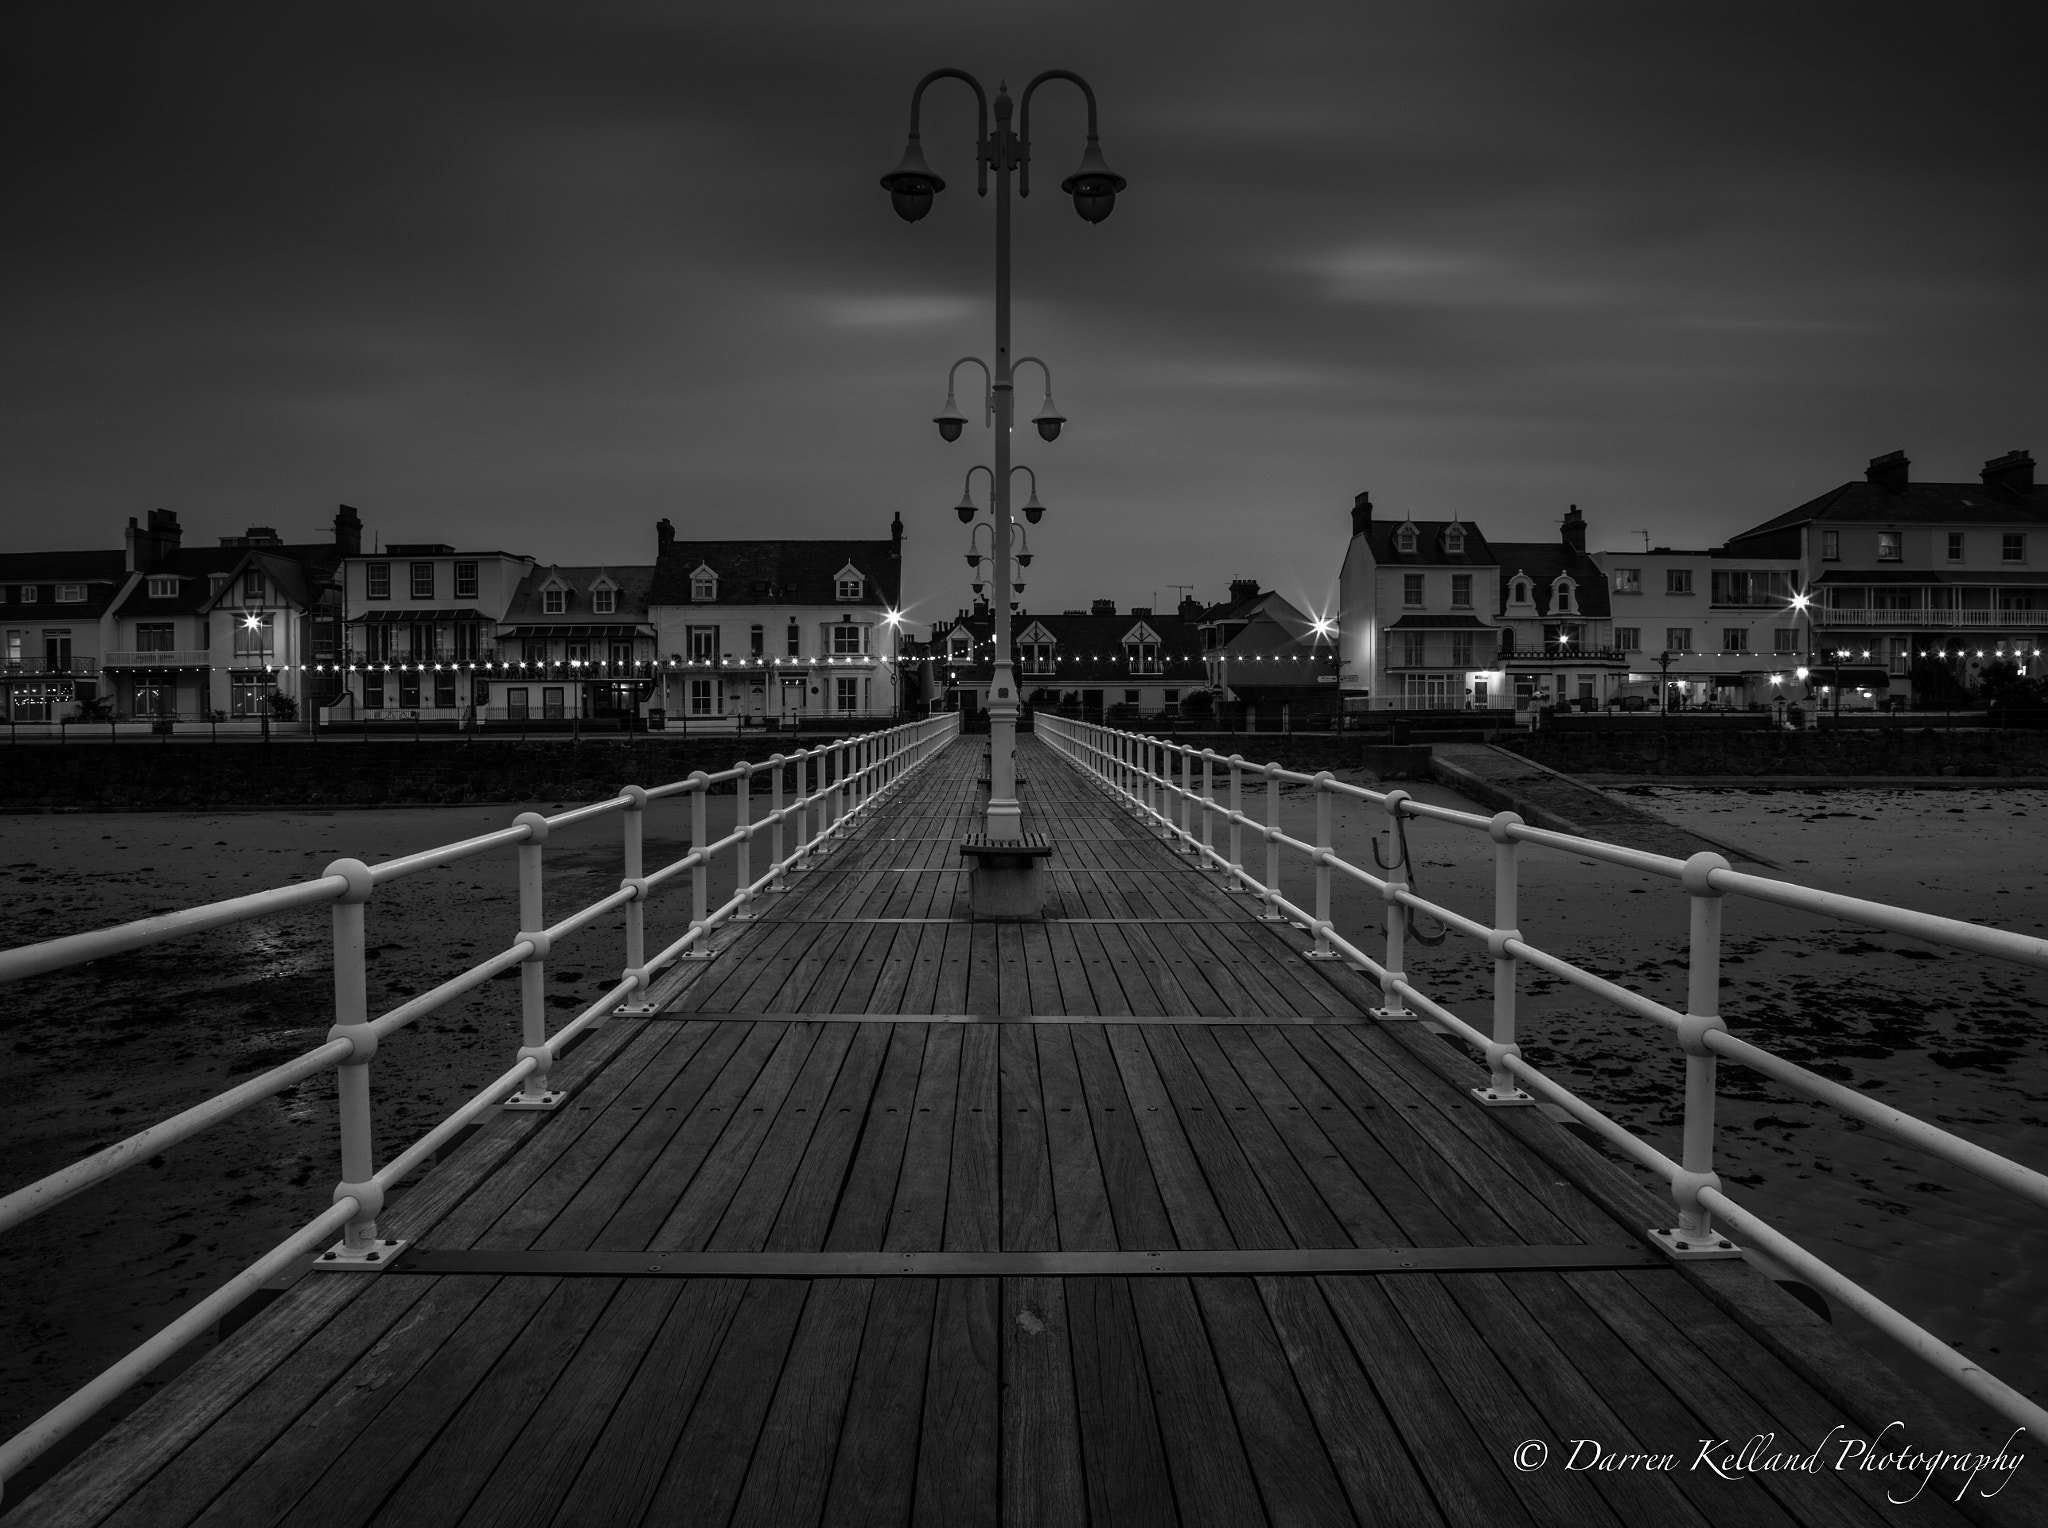 Photograph Havre des Pas by Darren Kelland on 500px